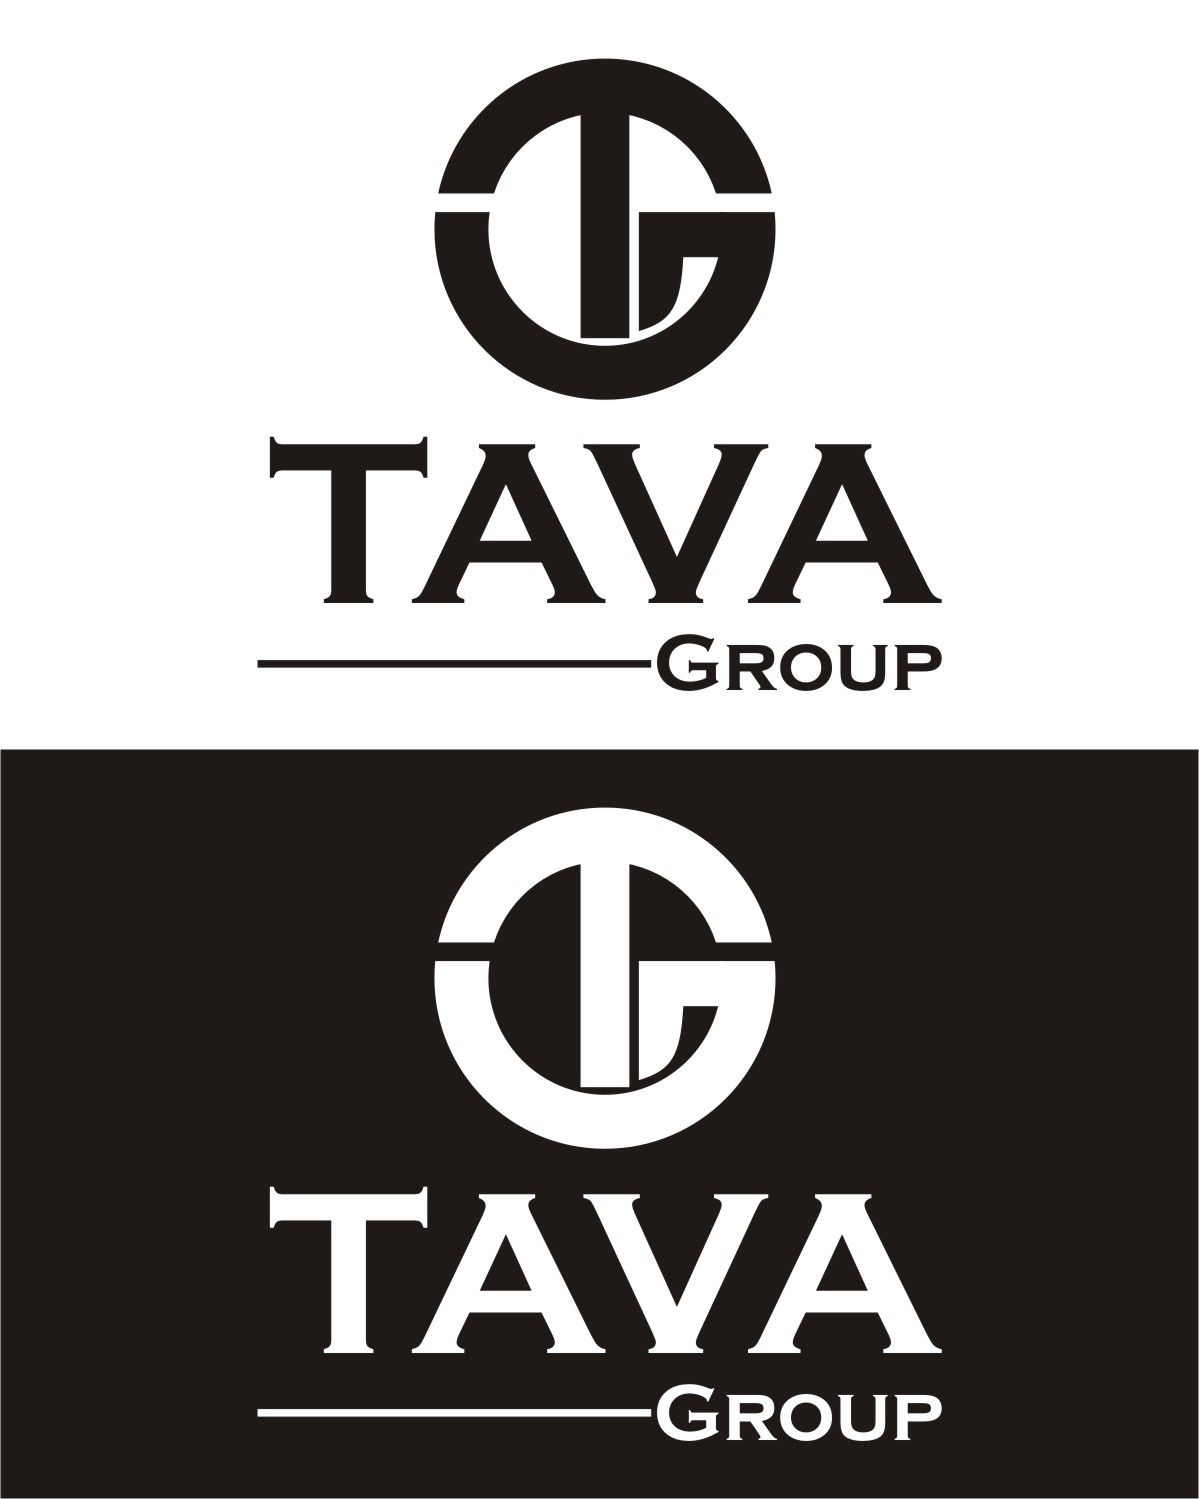 Logo Design by I graphics GRAPHICS - Entry No. 174 in the Logo Design Contest Creative Logo Design for Tava Group.